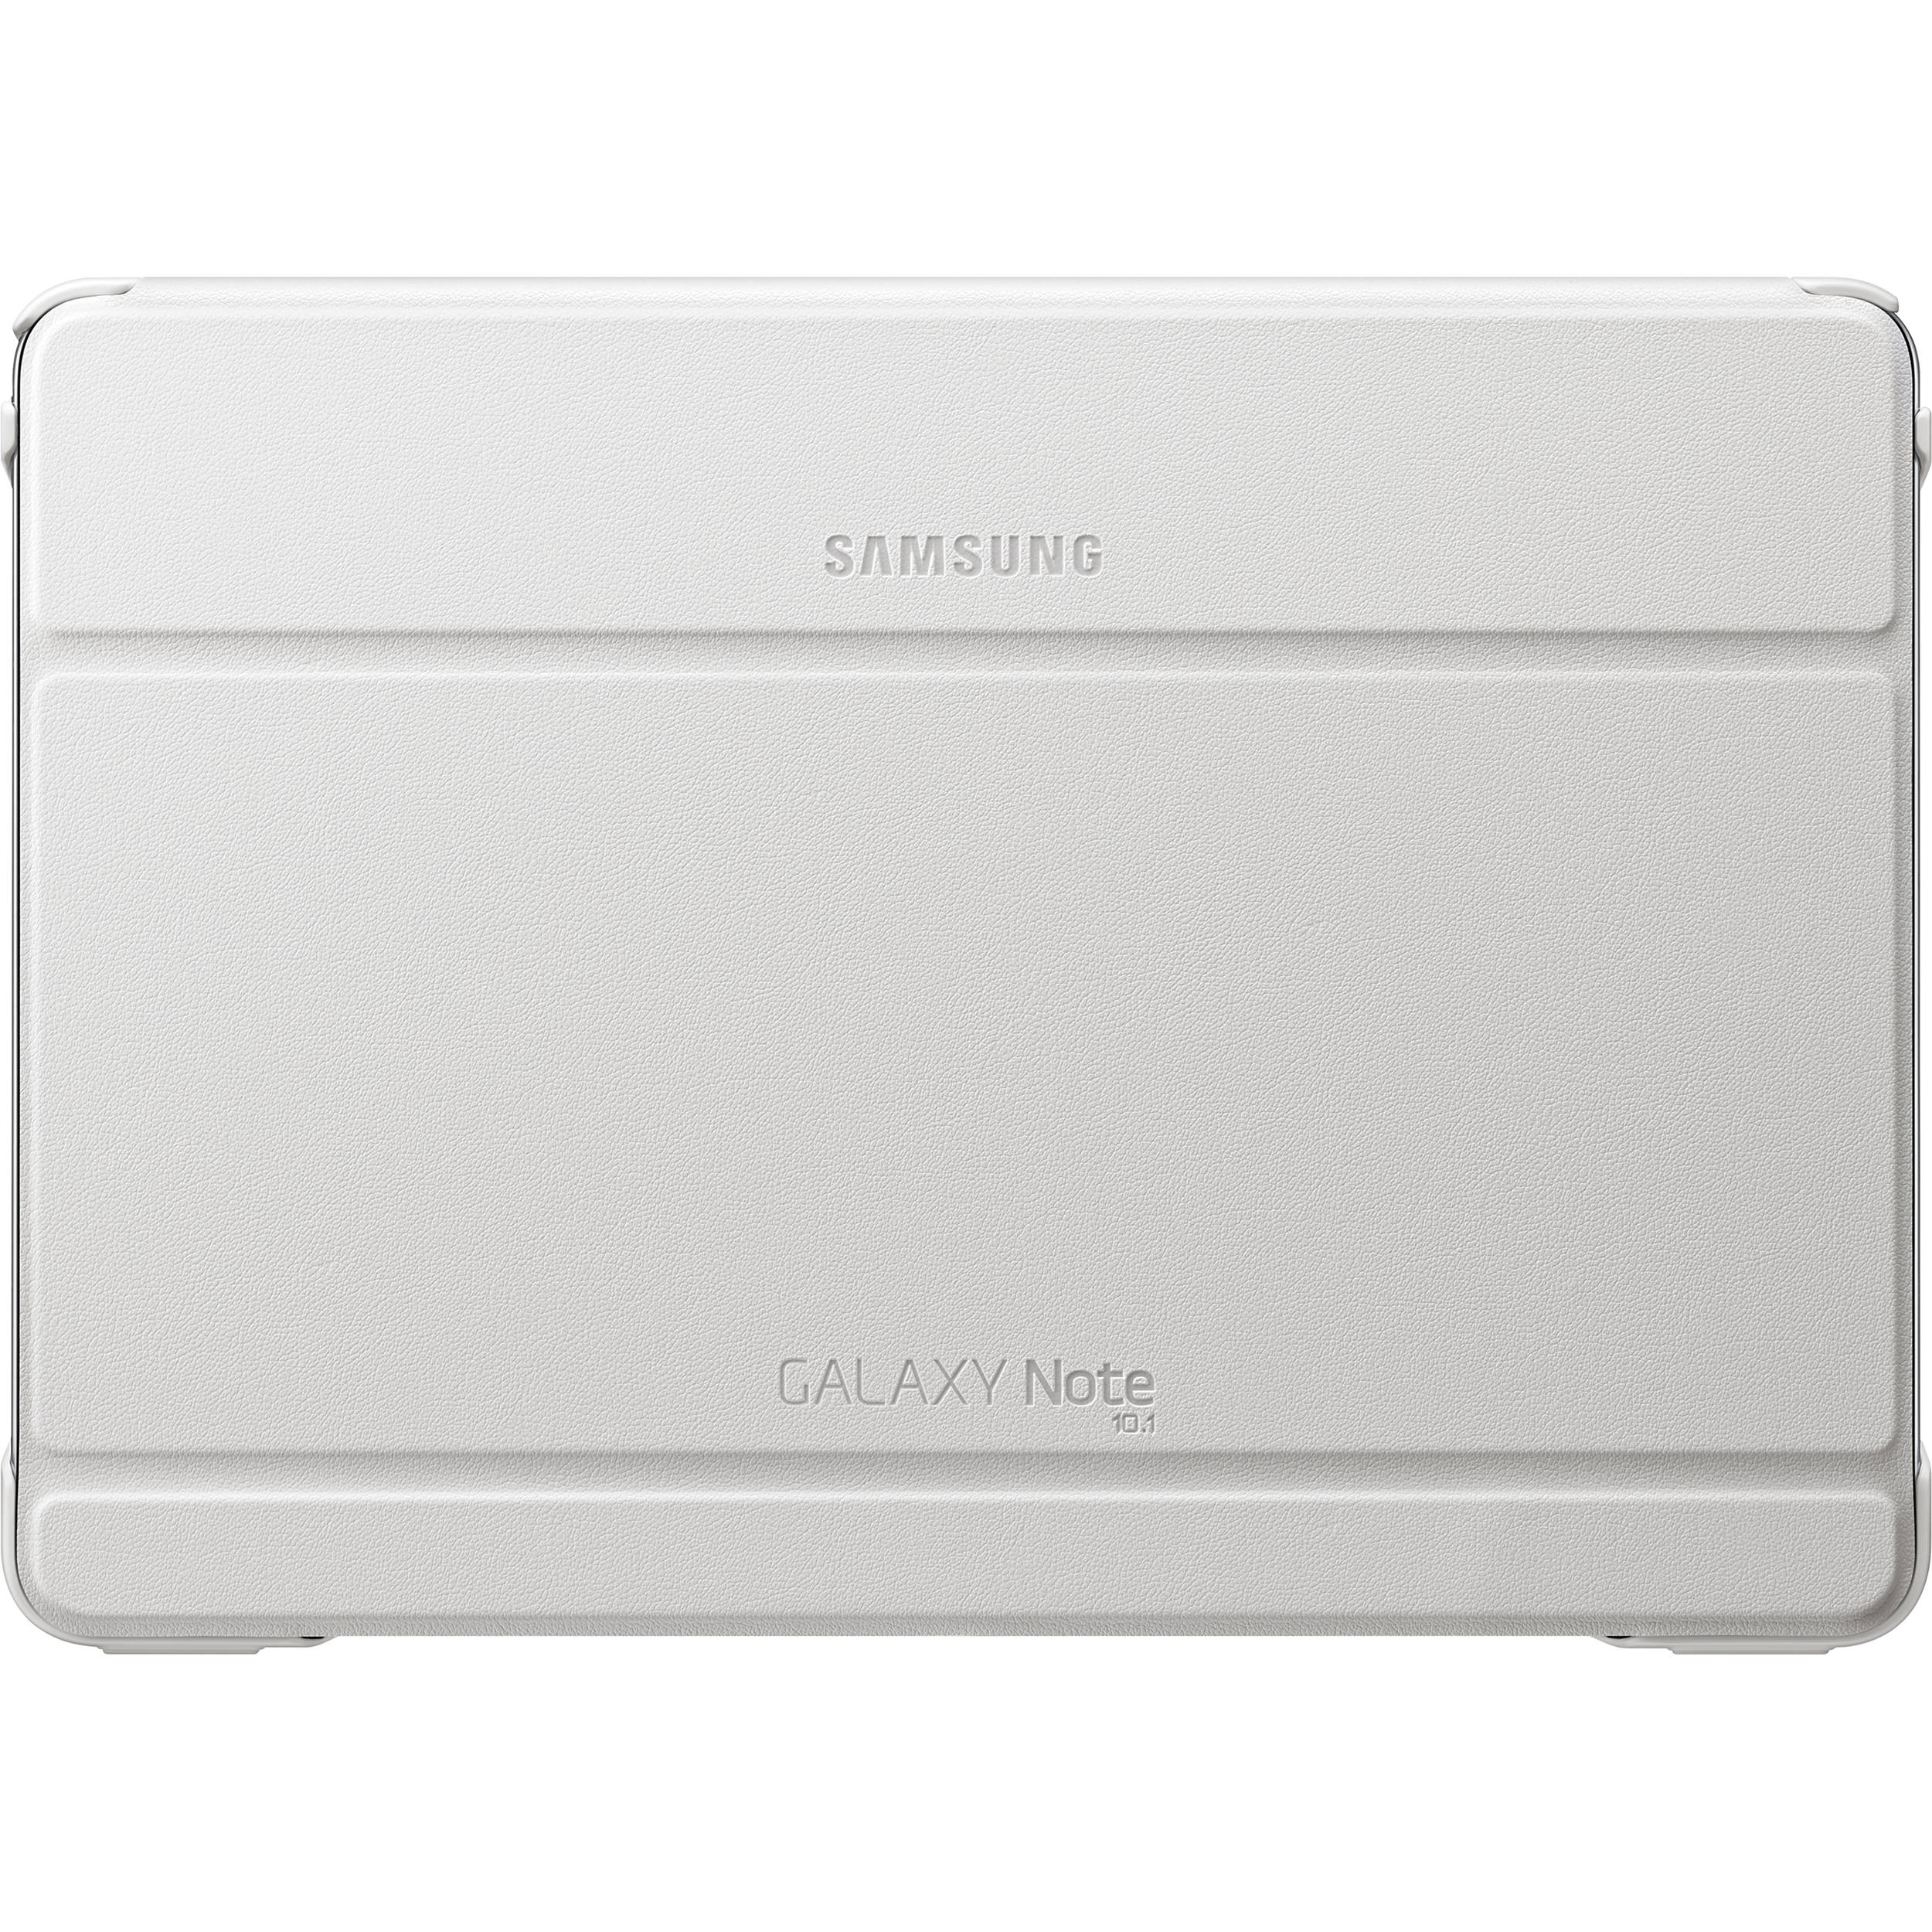 book cover samsung note 10.1